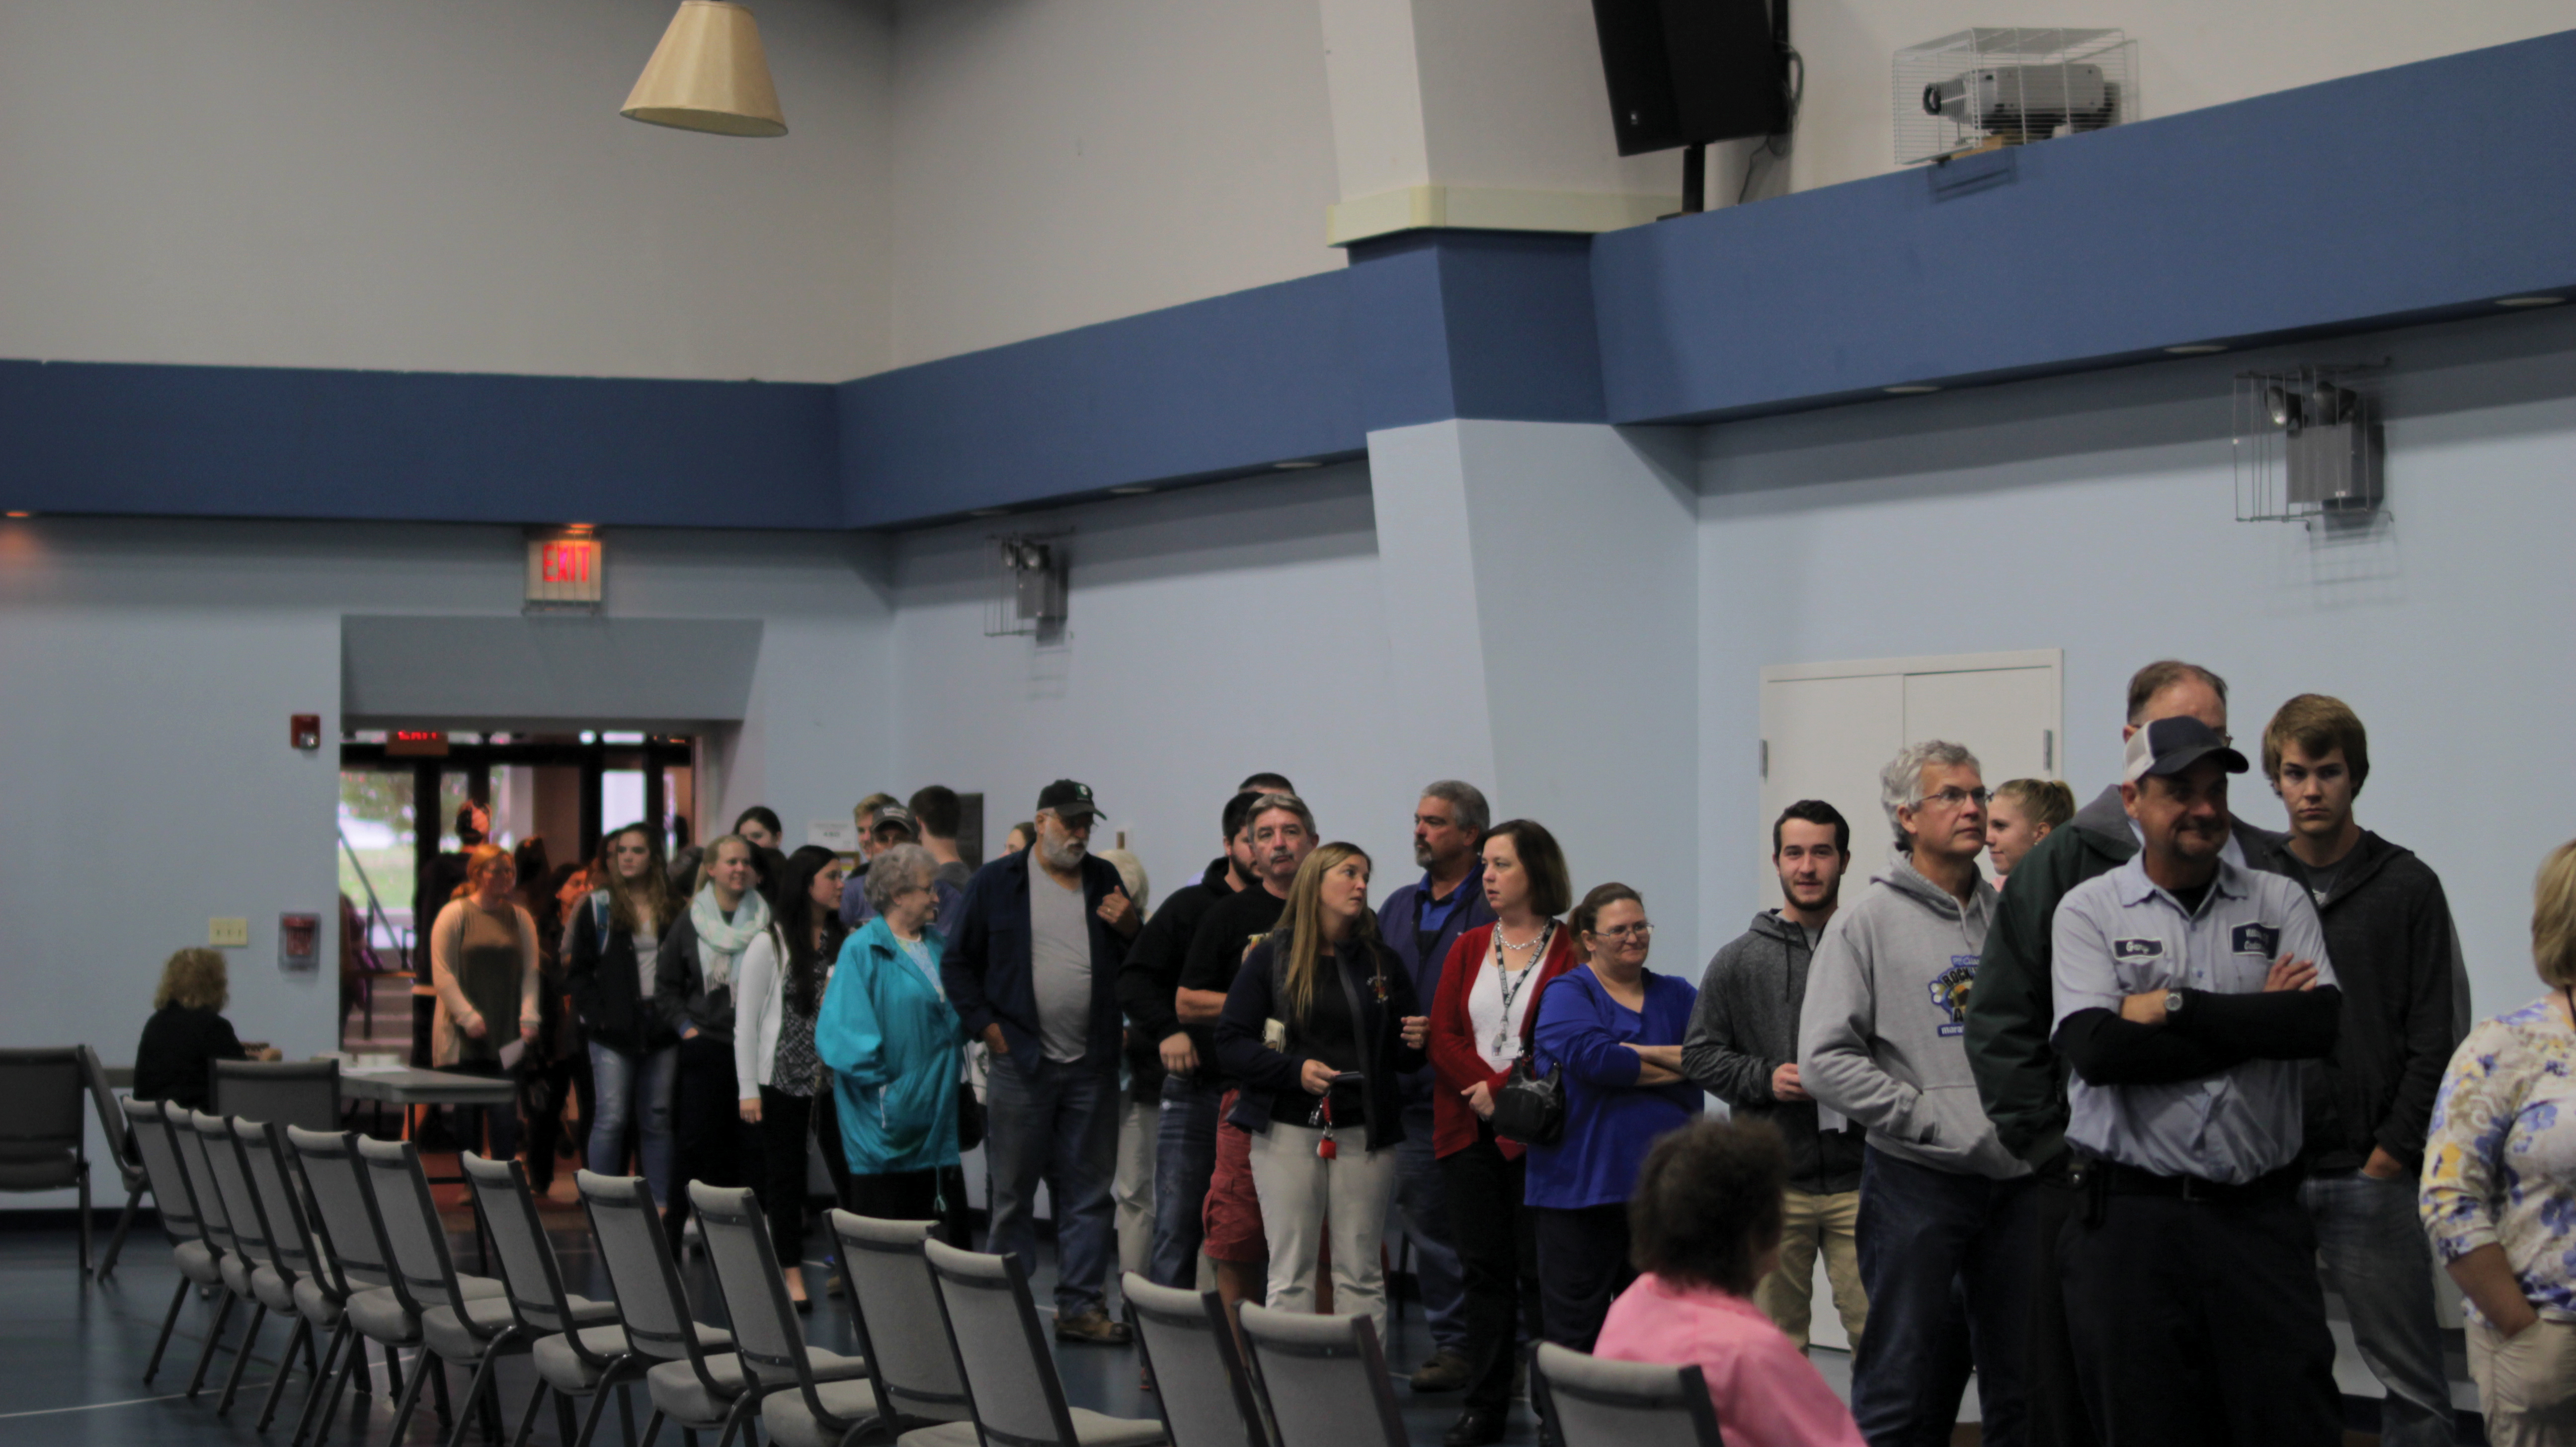 Grace Baptist Church in Cedarville held a polling place in their gym for Cedarville residents and students of the nearby universities to put in their votes.